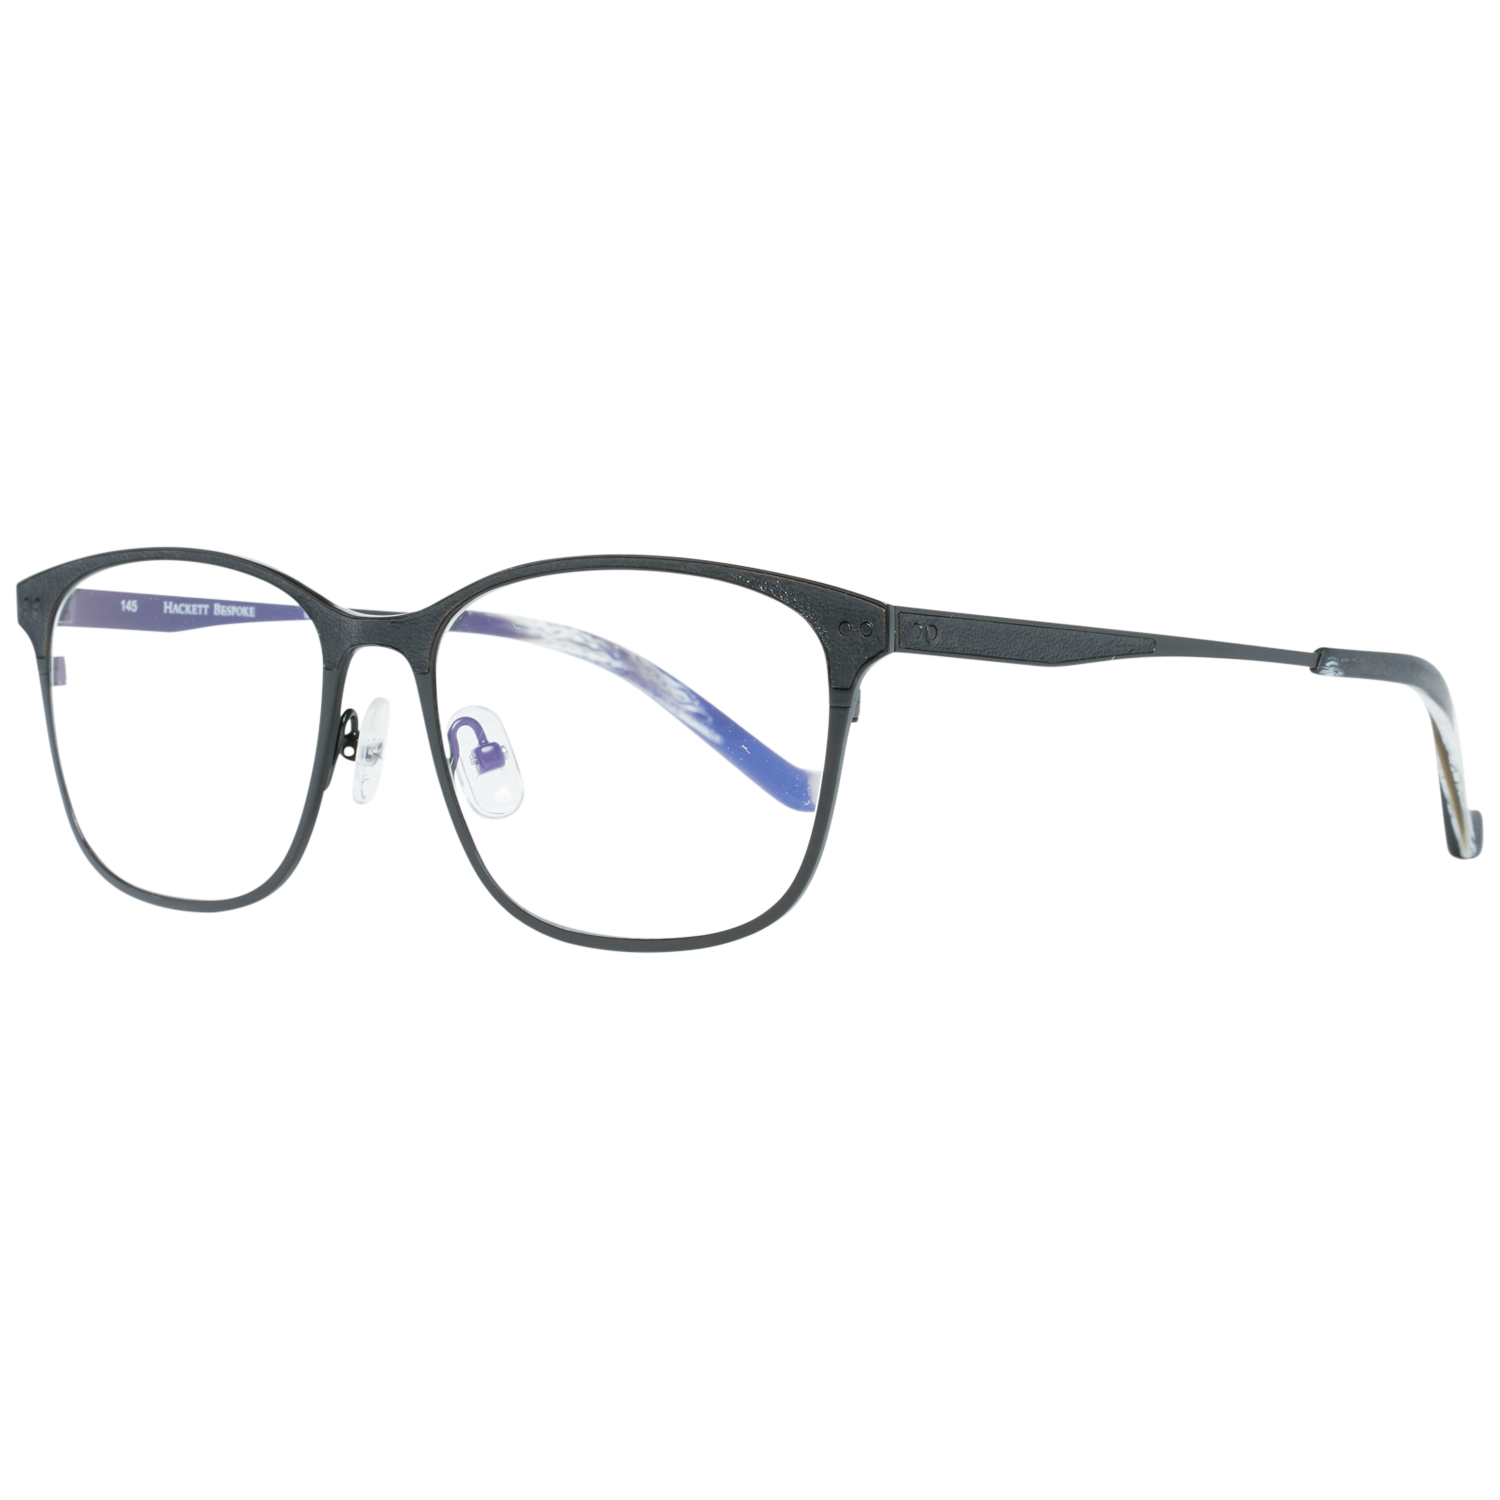 Hackett Bespoke Optical Frame HEB178 5402 Black